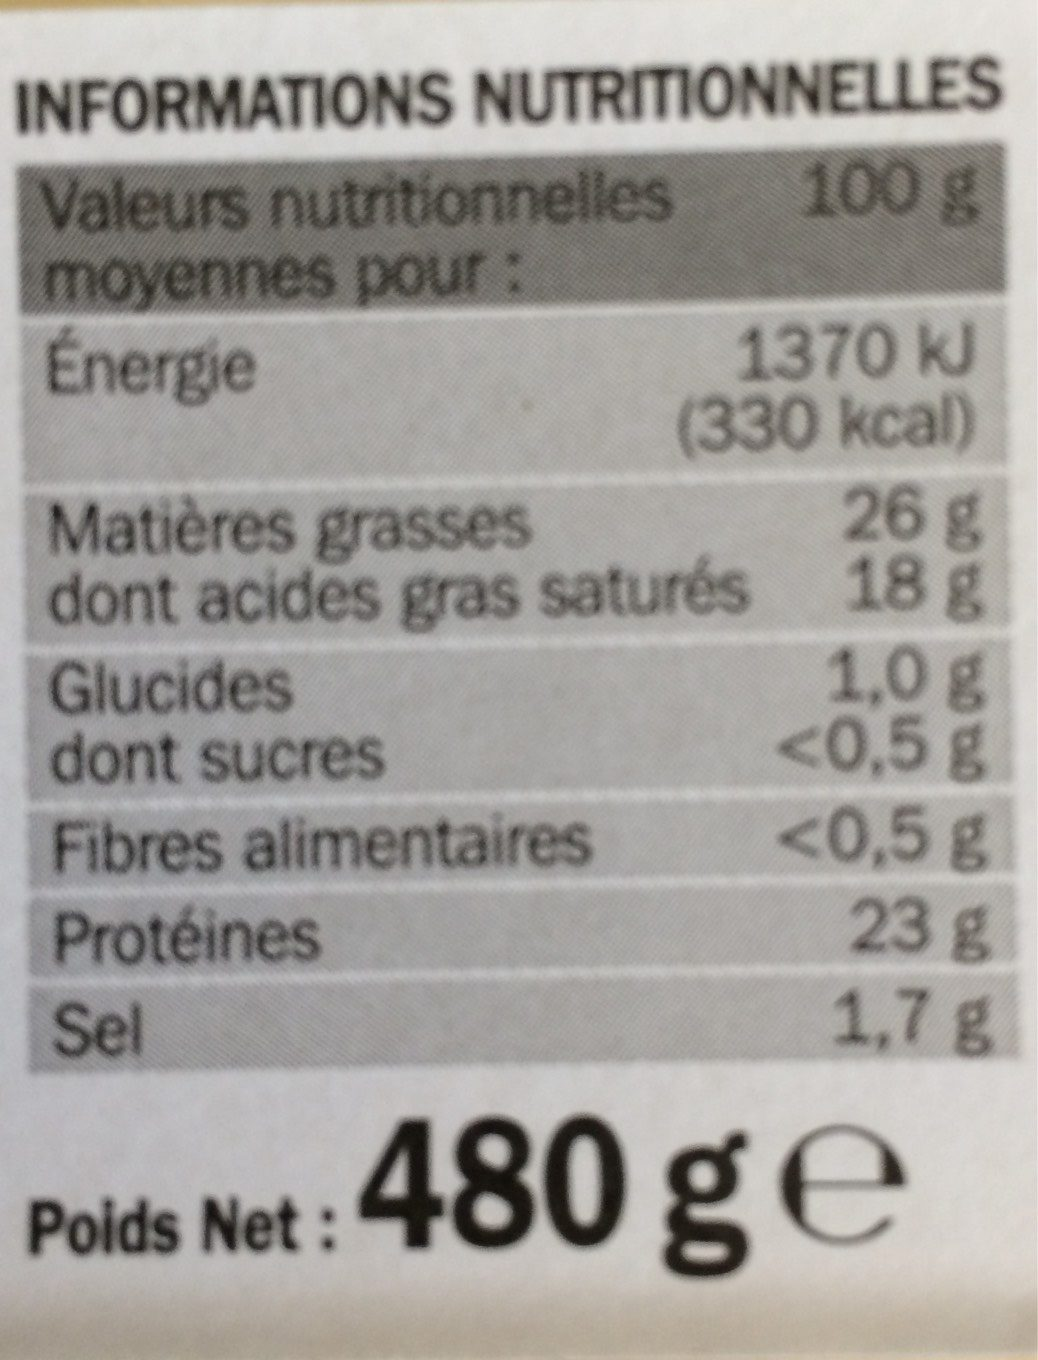 Raclette nat tranches xxl 26% - Voedingswaarden